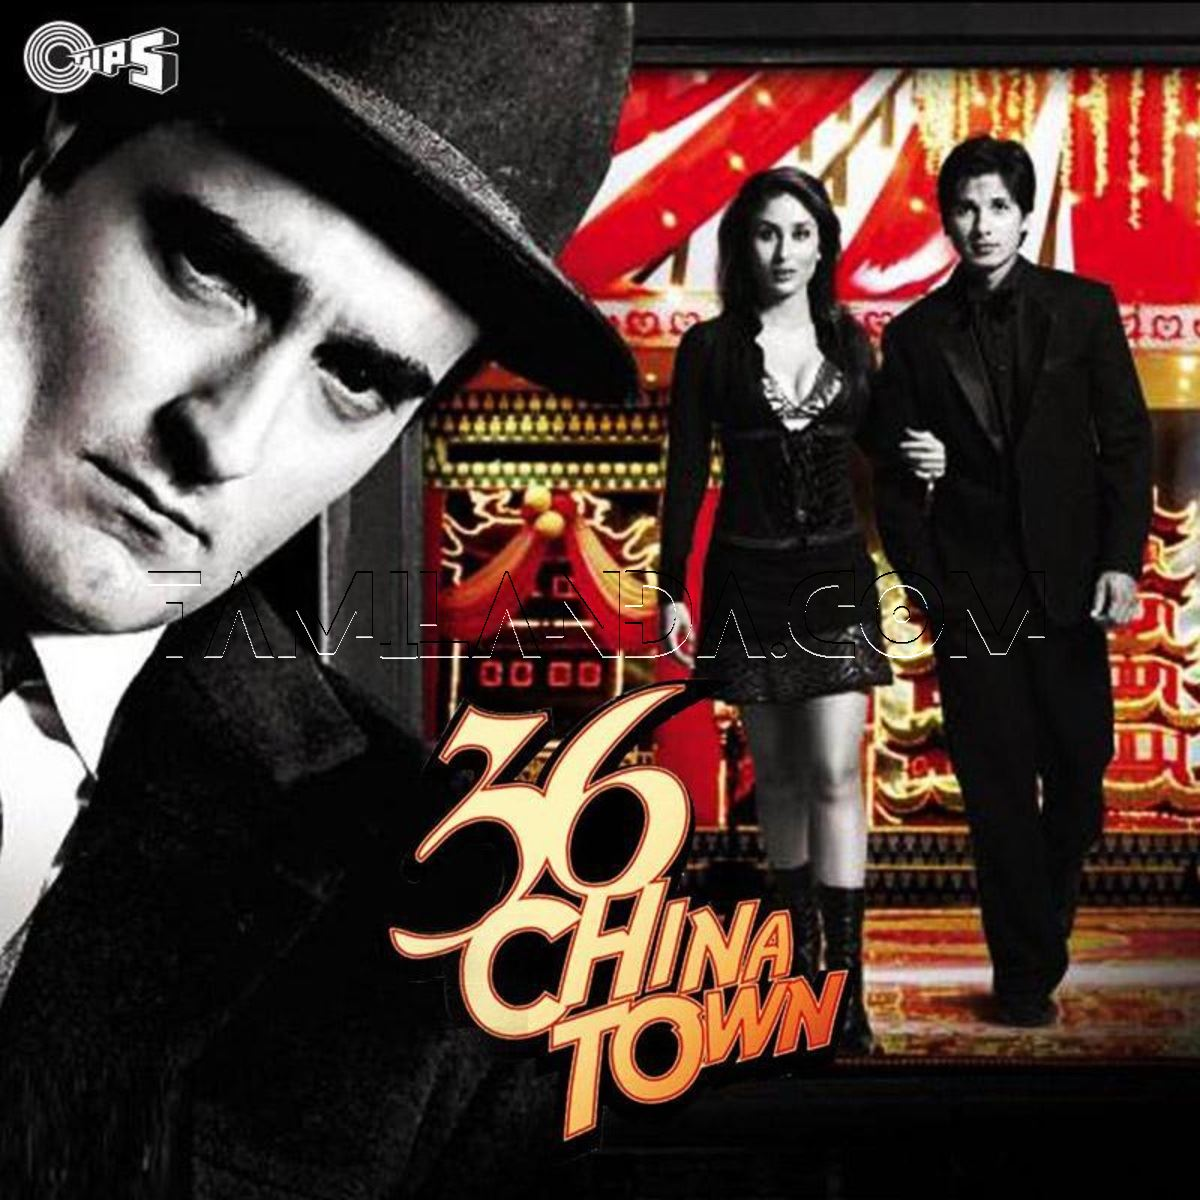 36 China Town (2006) FLAC Songs